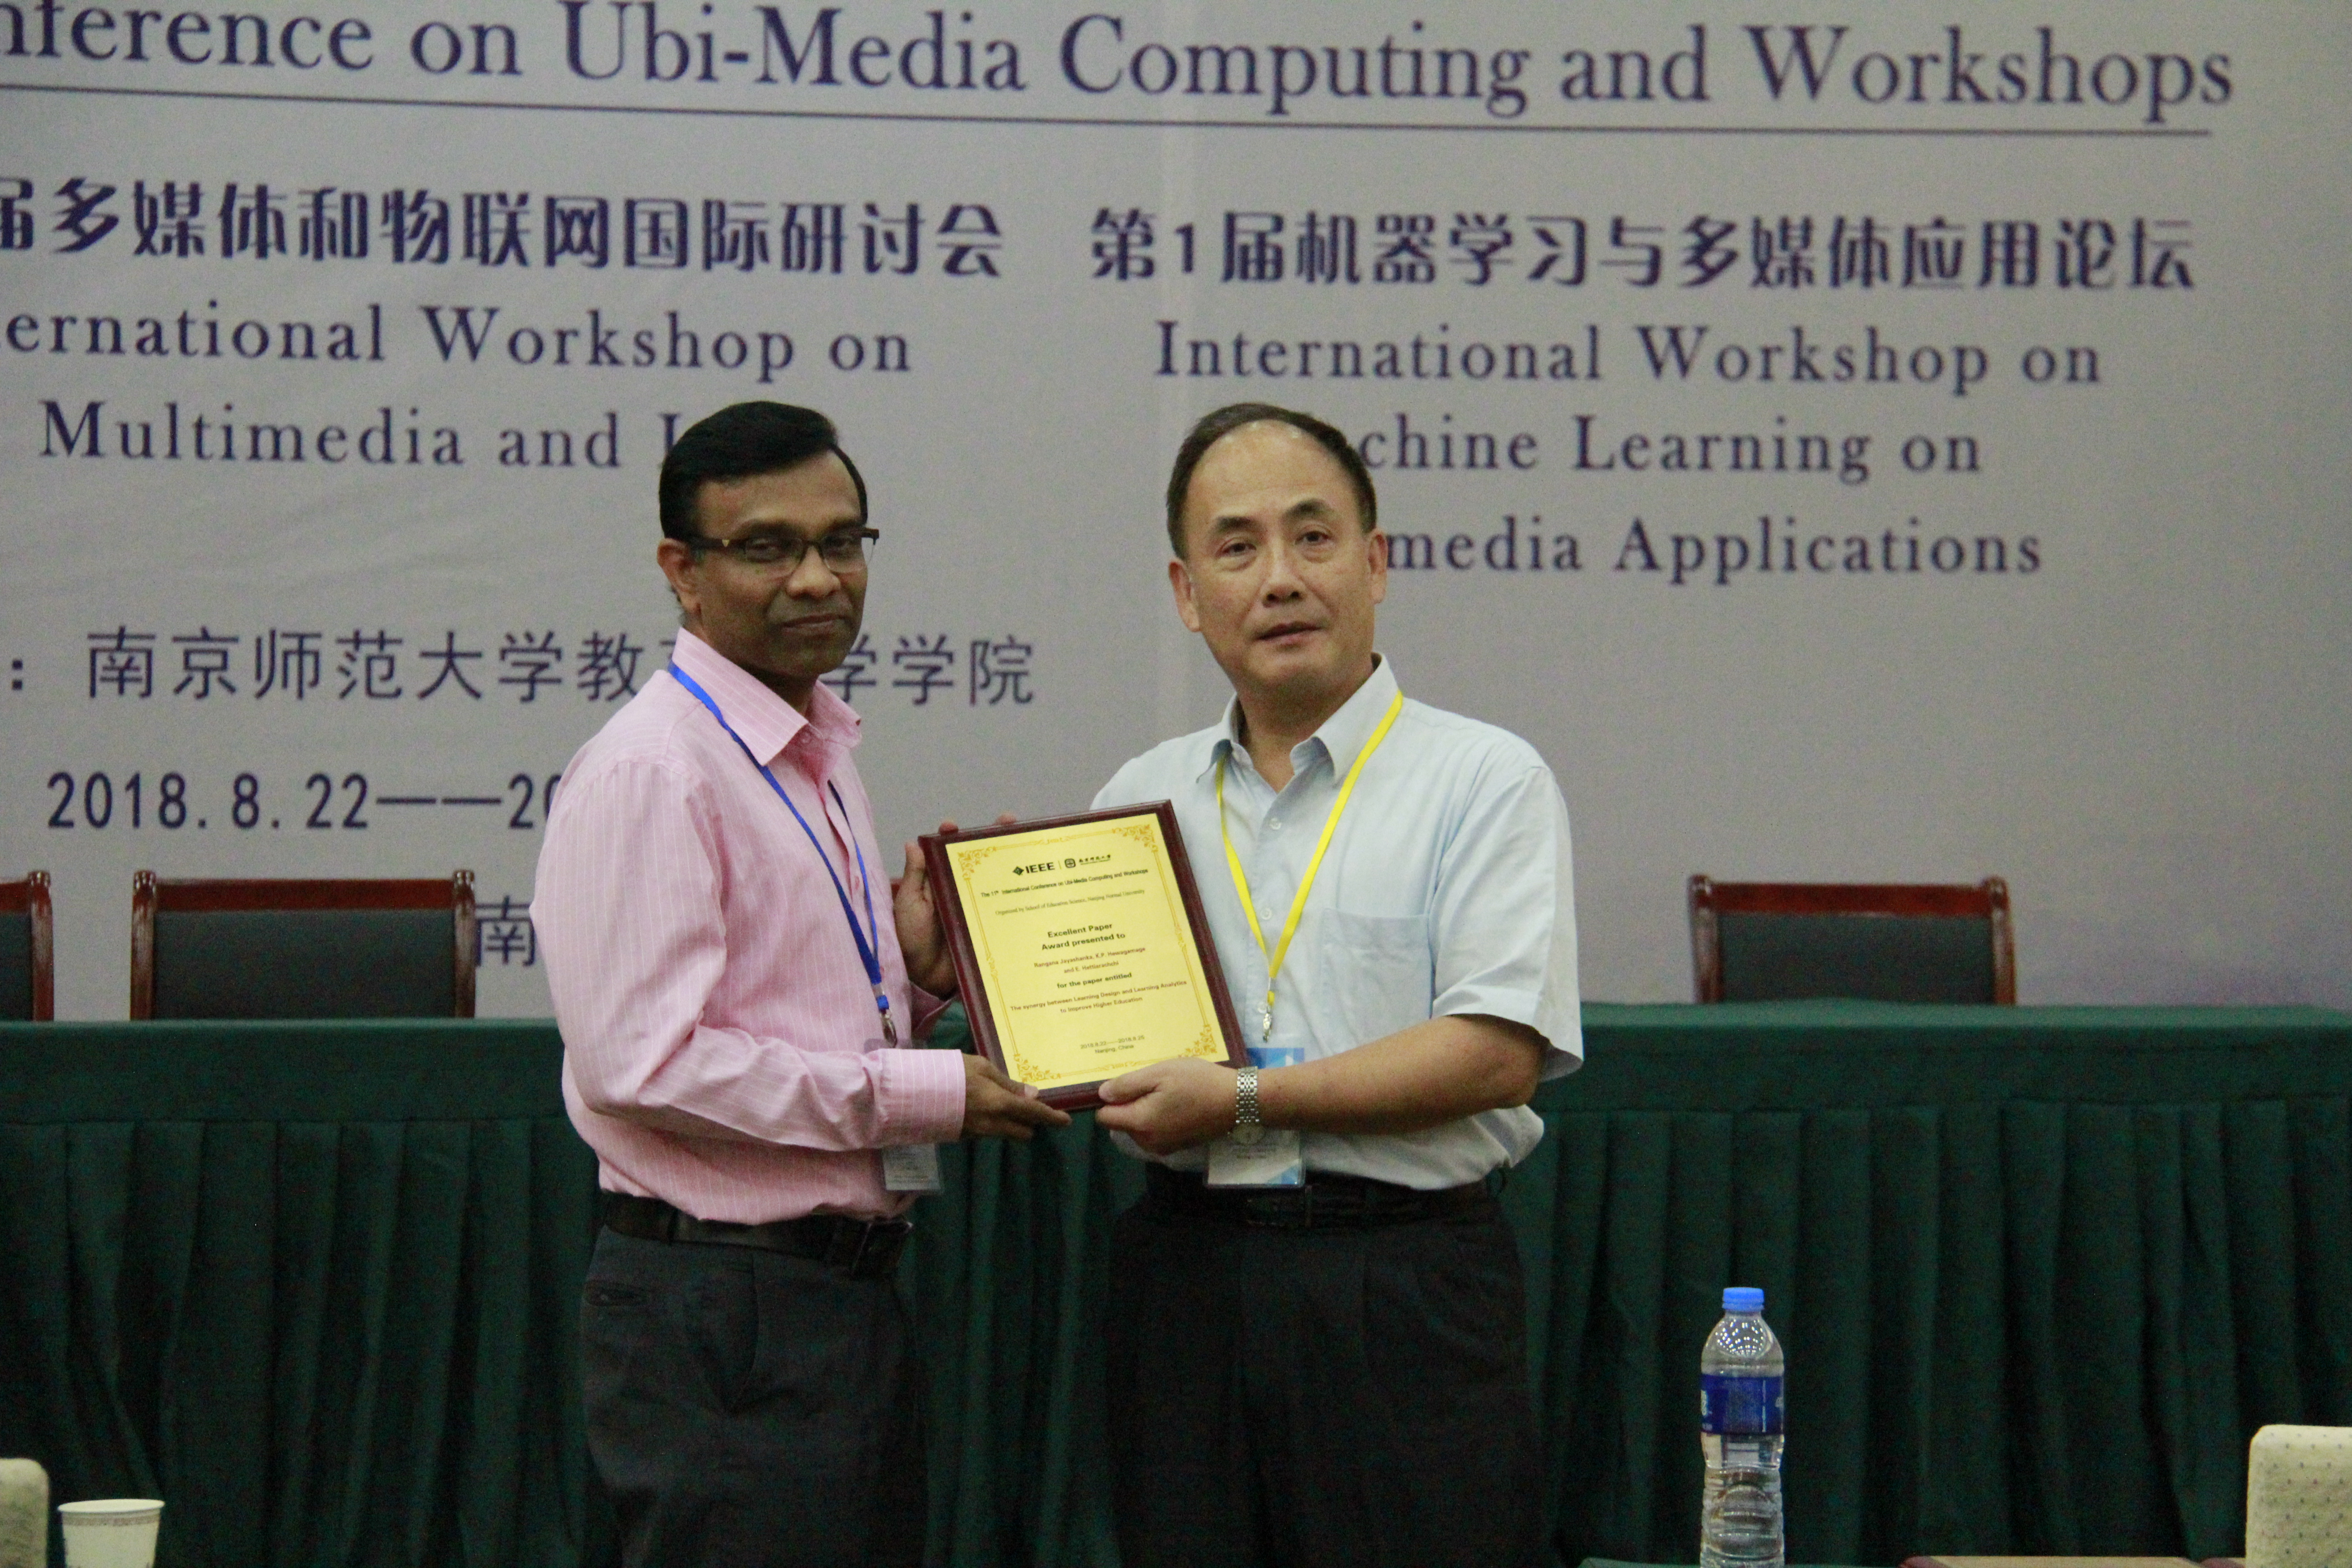 Excellence Paper award of 11th international Conference on Ubi-Media Computing and Workshops